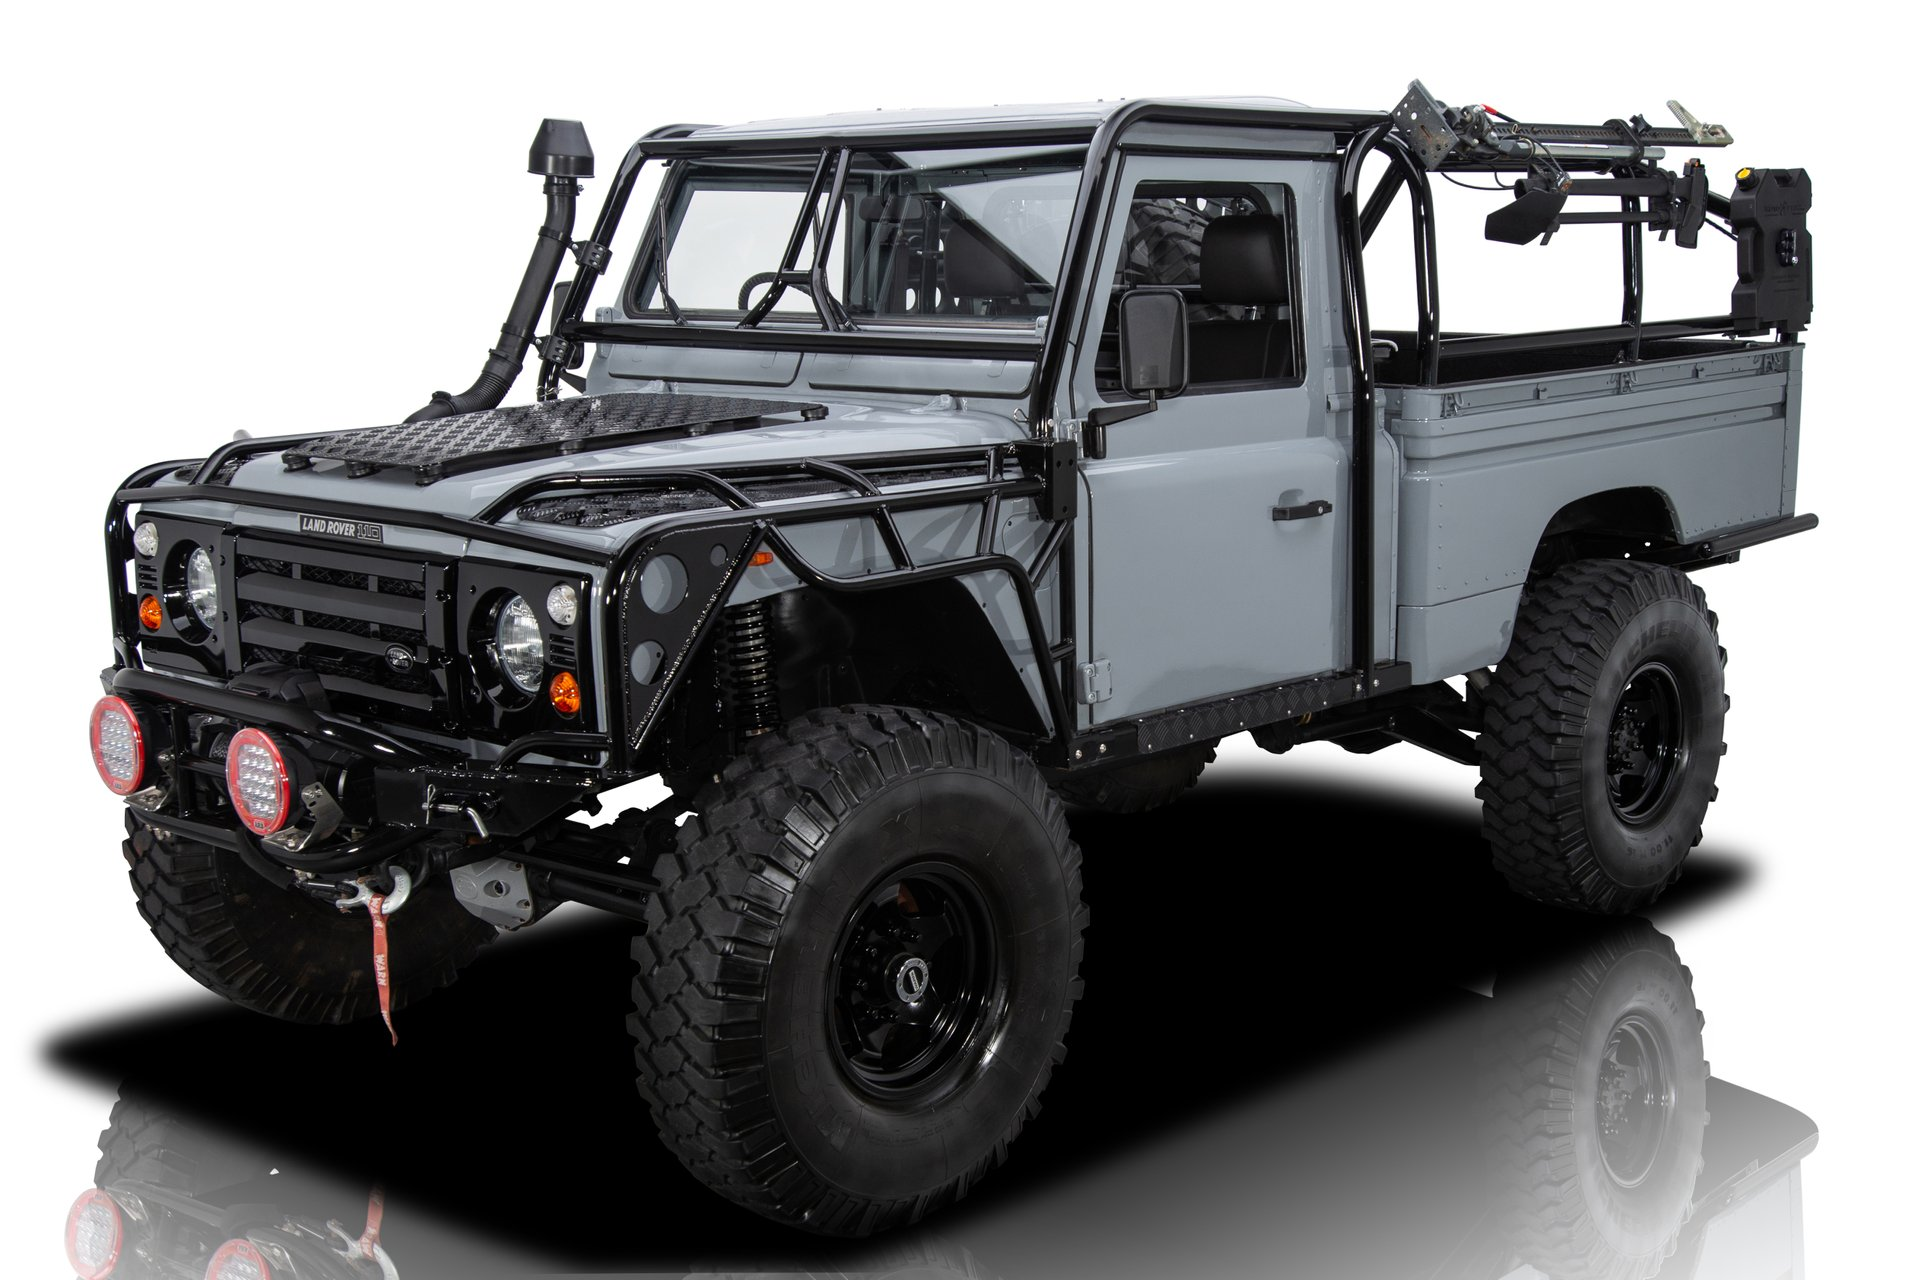 1984 land rover defender 110 pickup truck